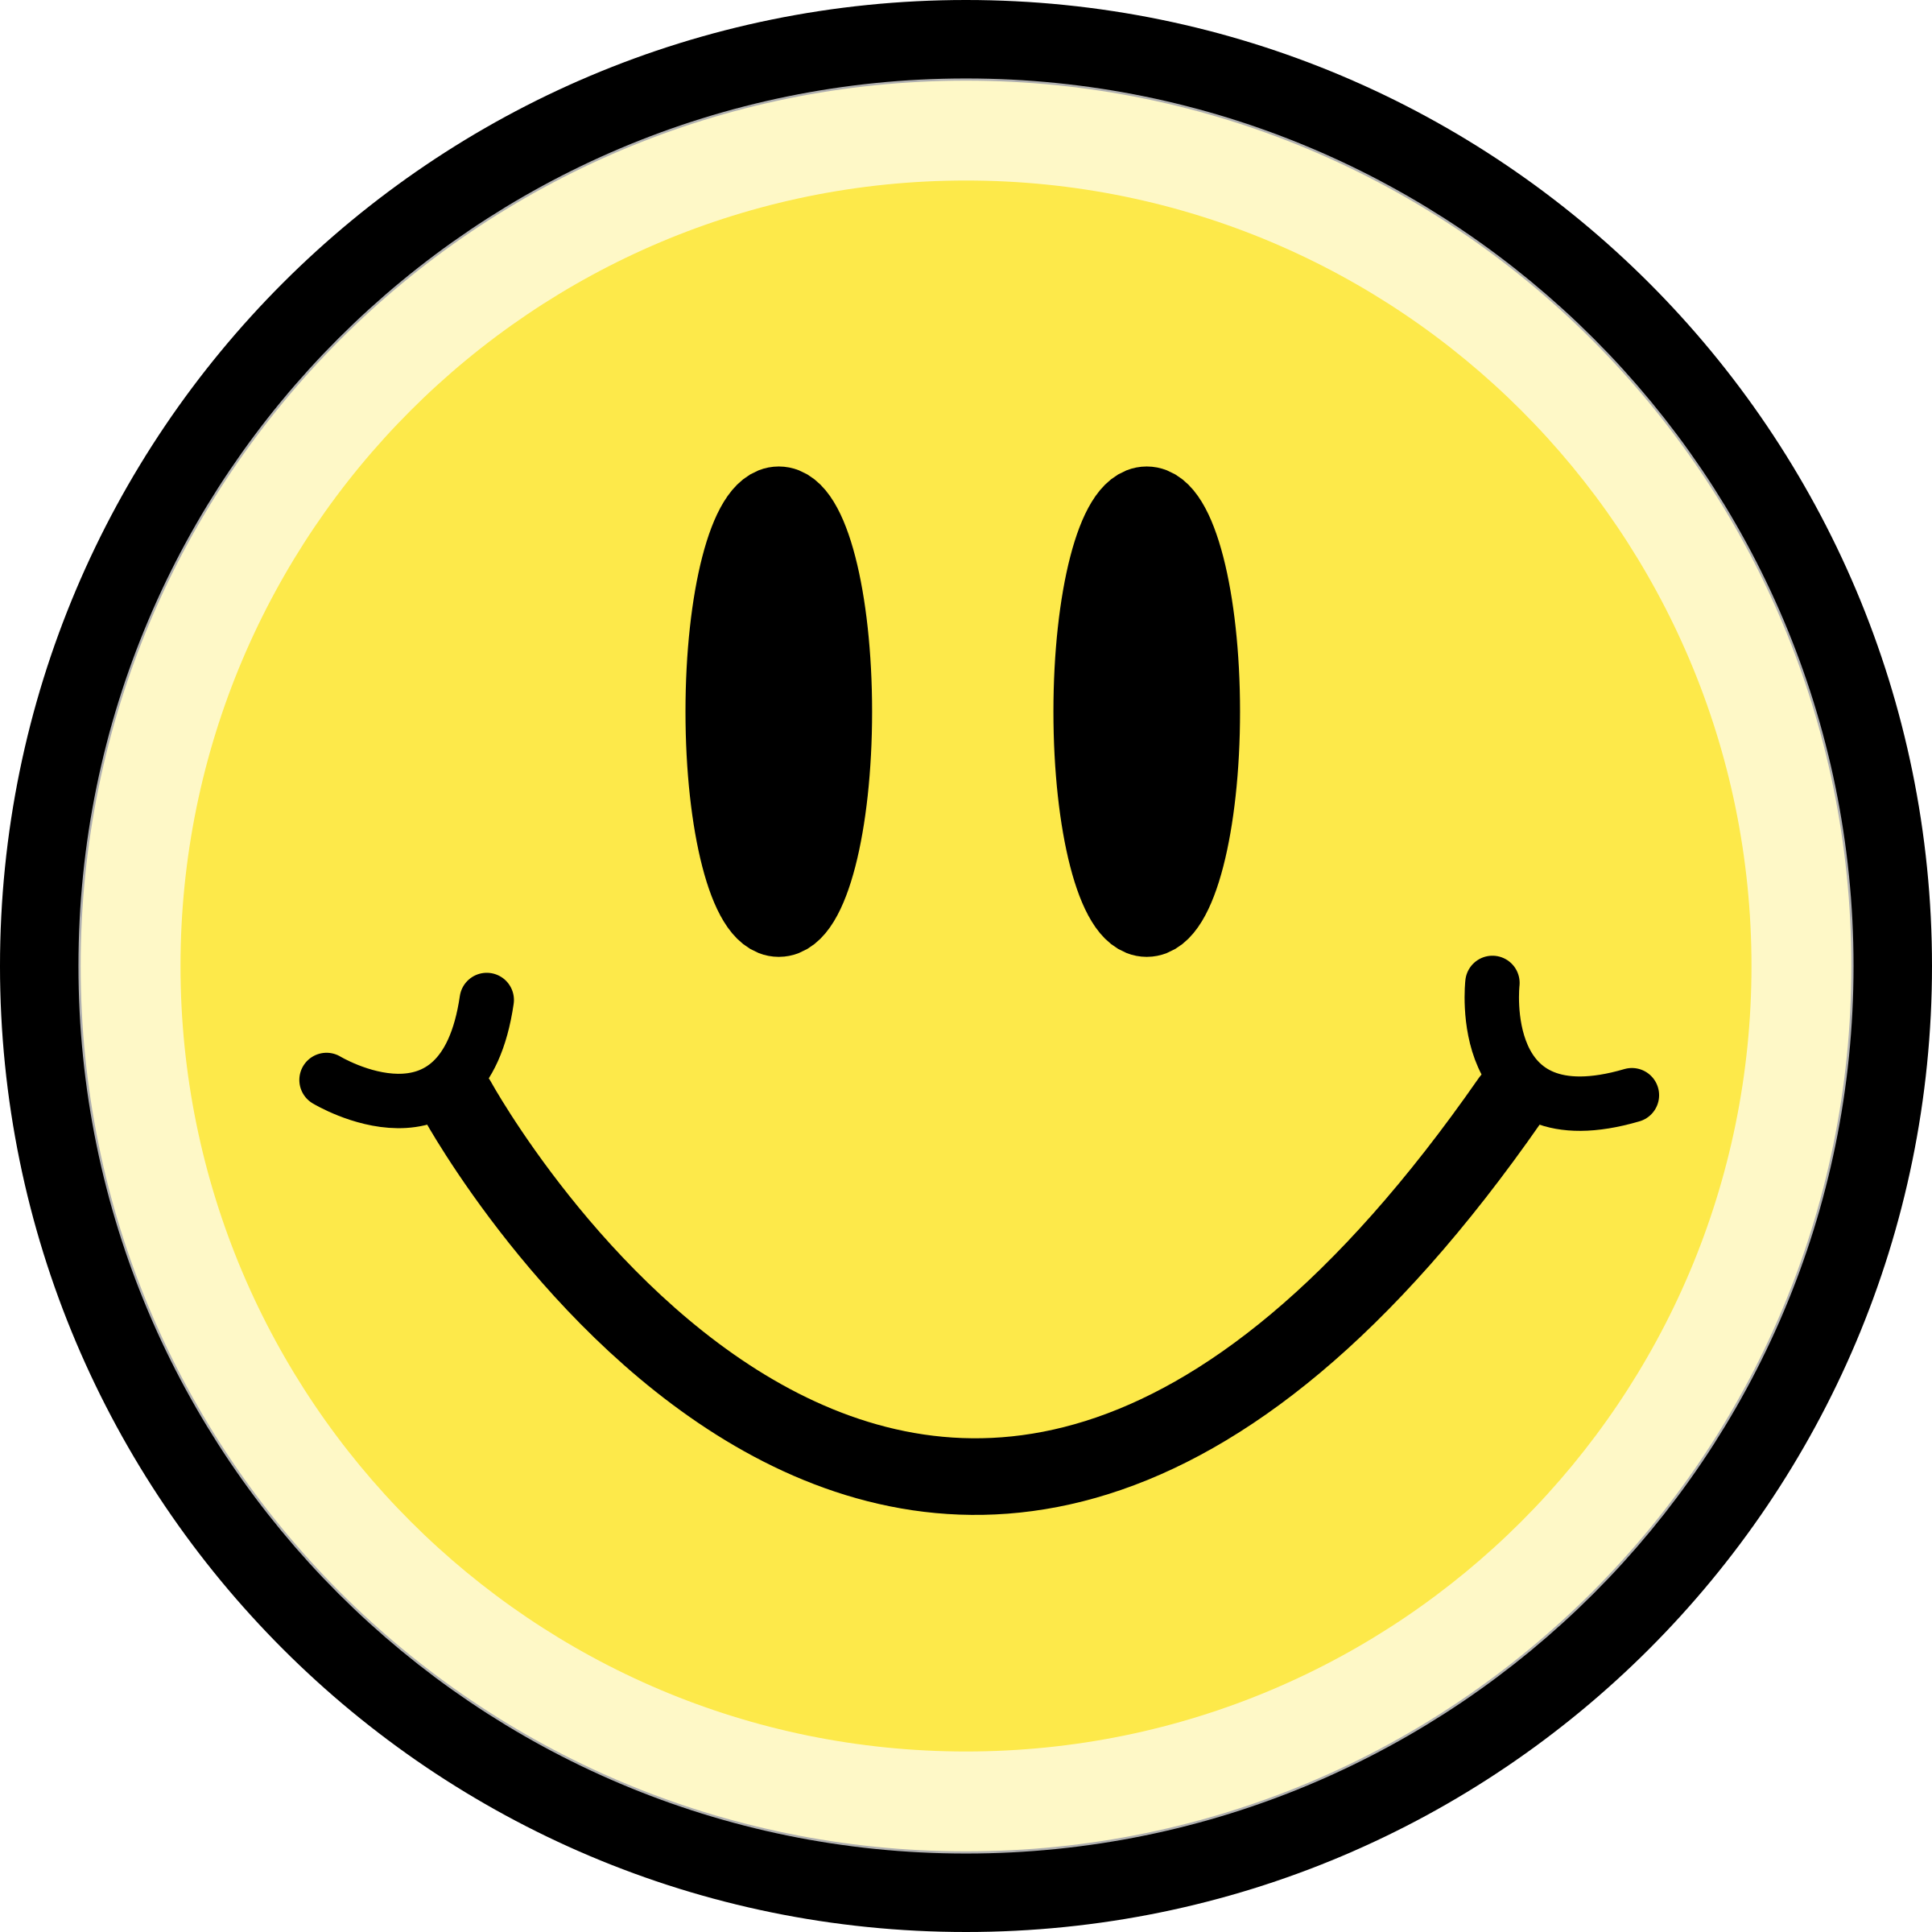 Smiley Looking Happy PNG Image.